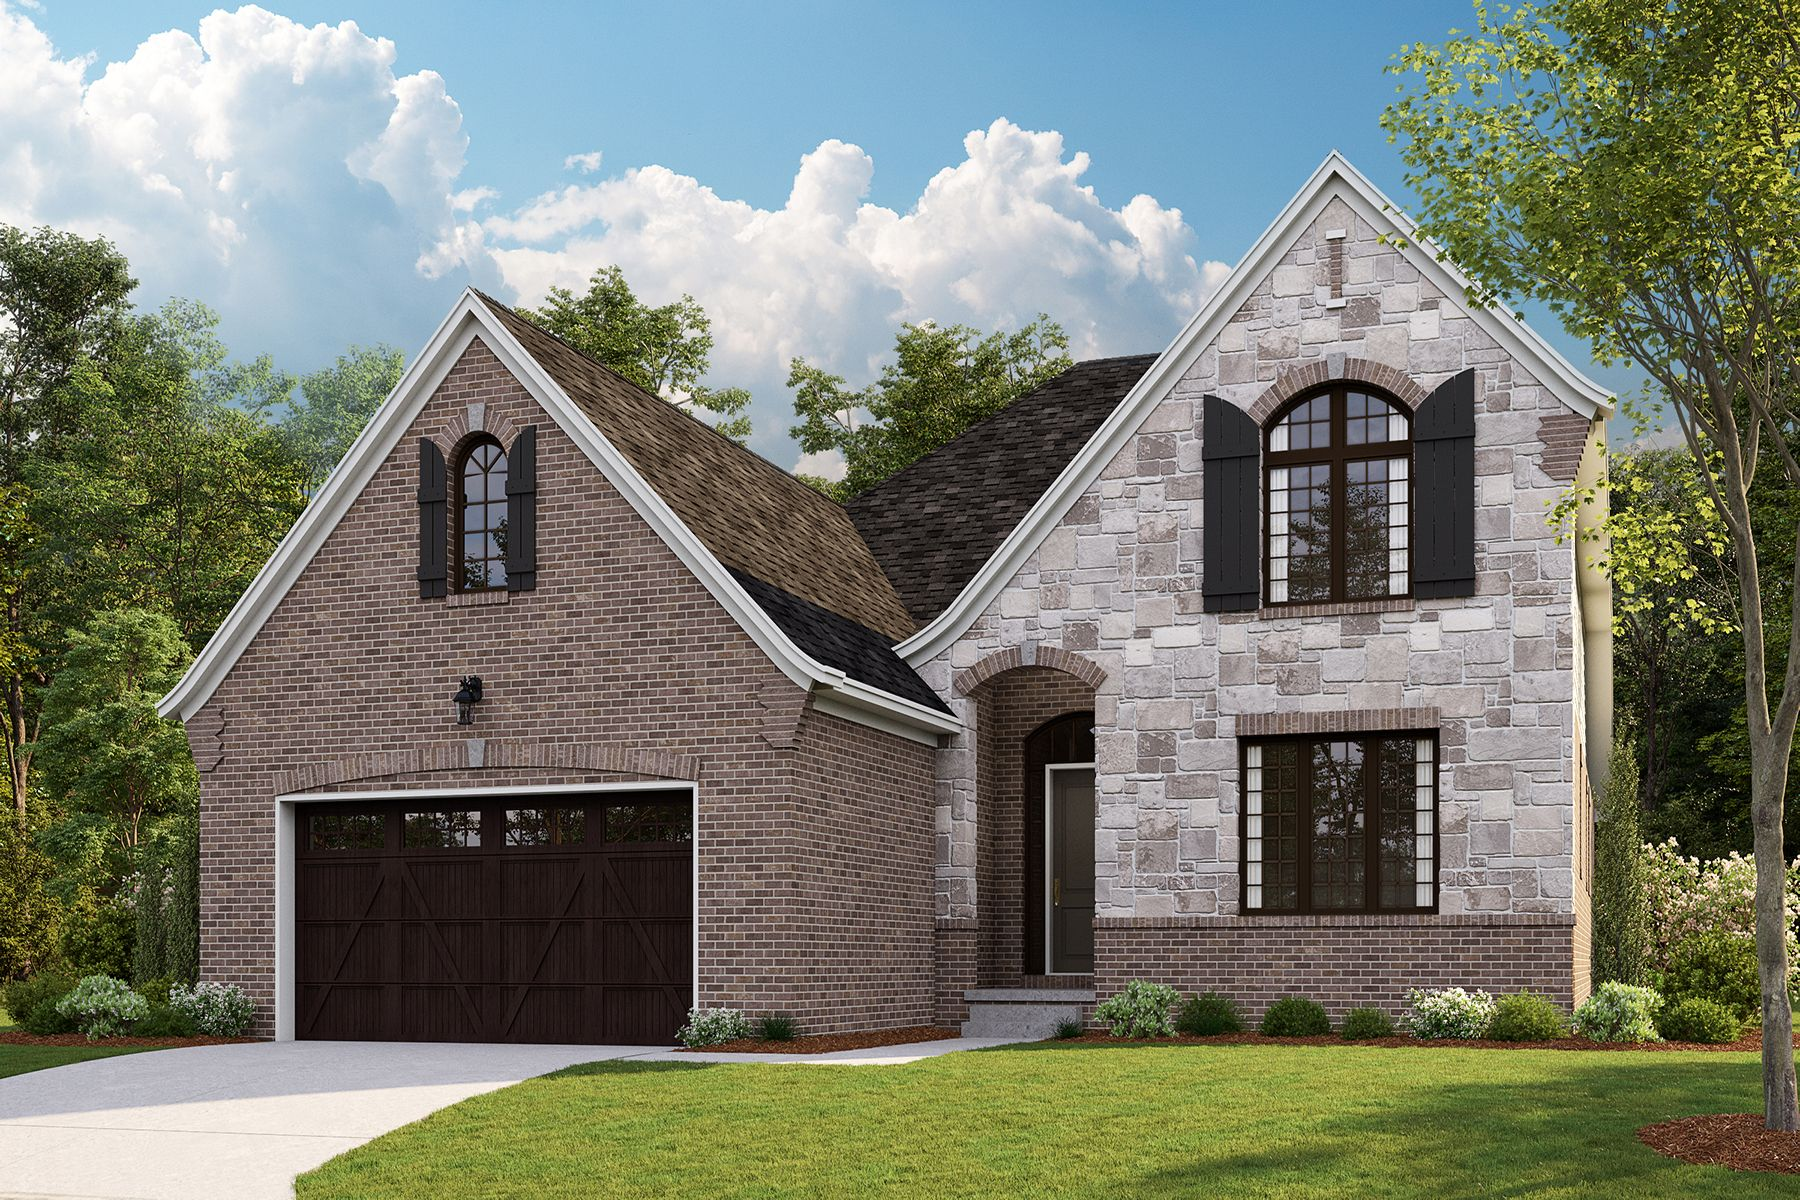 New Construction Homes & Plans in Redford, MI | 1,507 Homes